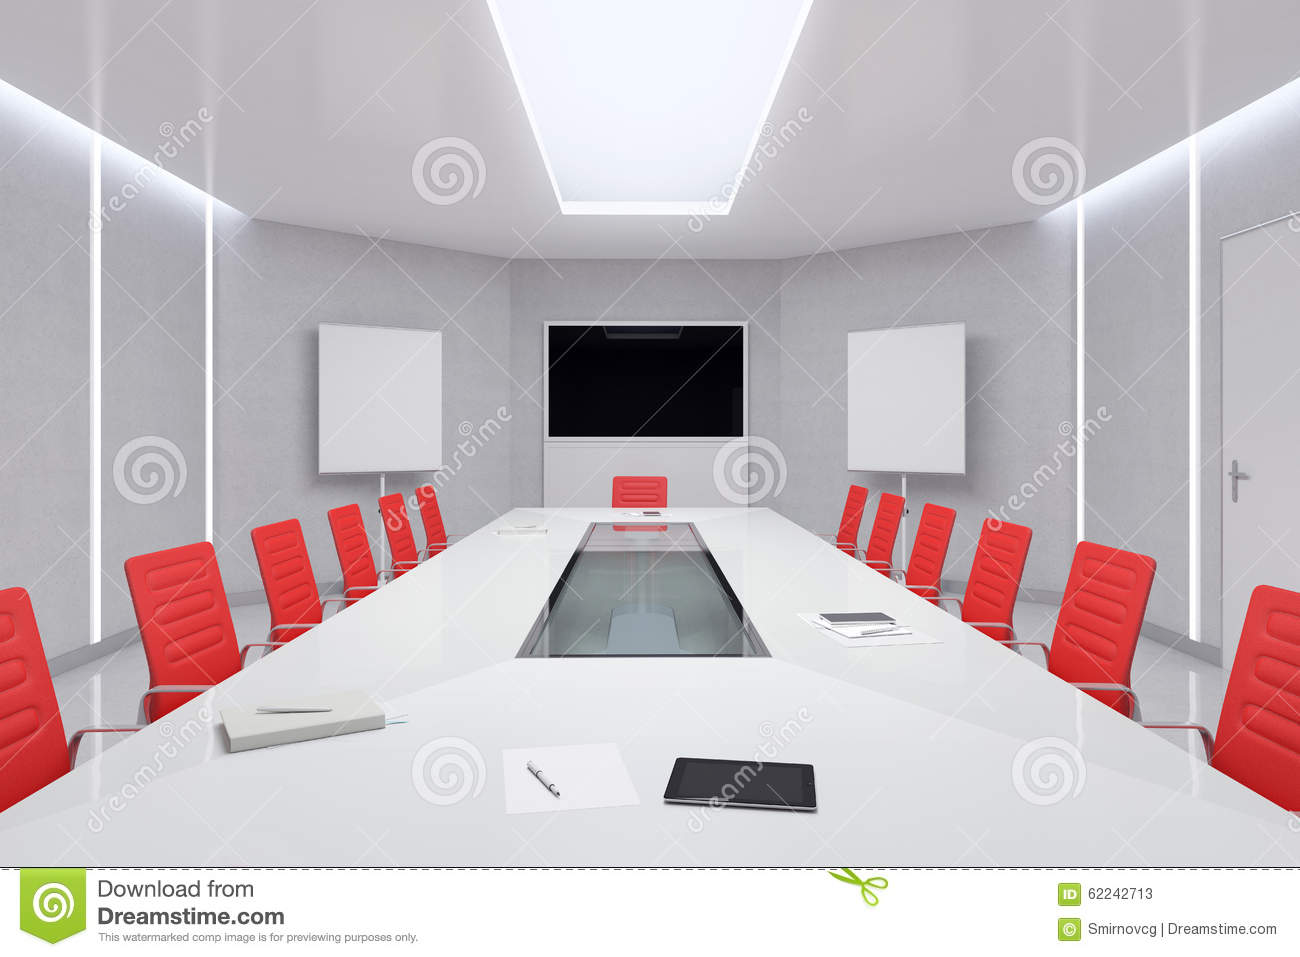 red desk chair small outdoor patio table and chairs modern meeting room. 3d illustration. stock illustration - image: 62242713